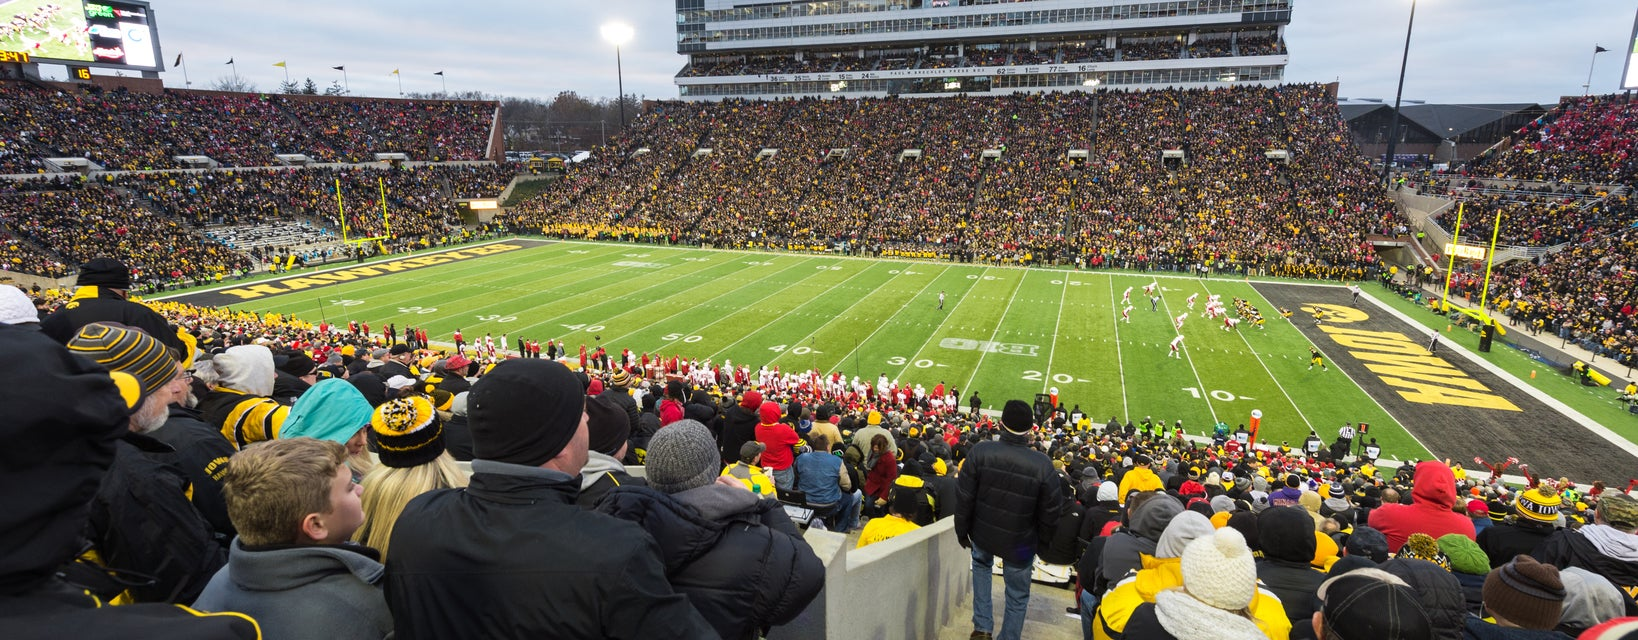 Seat view from Sideline